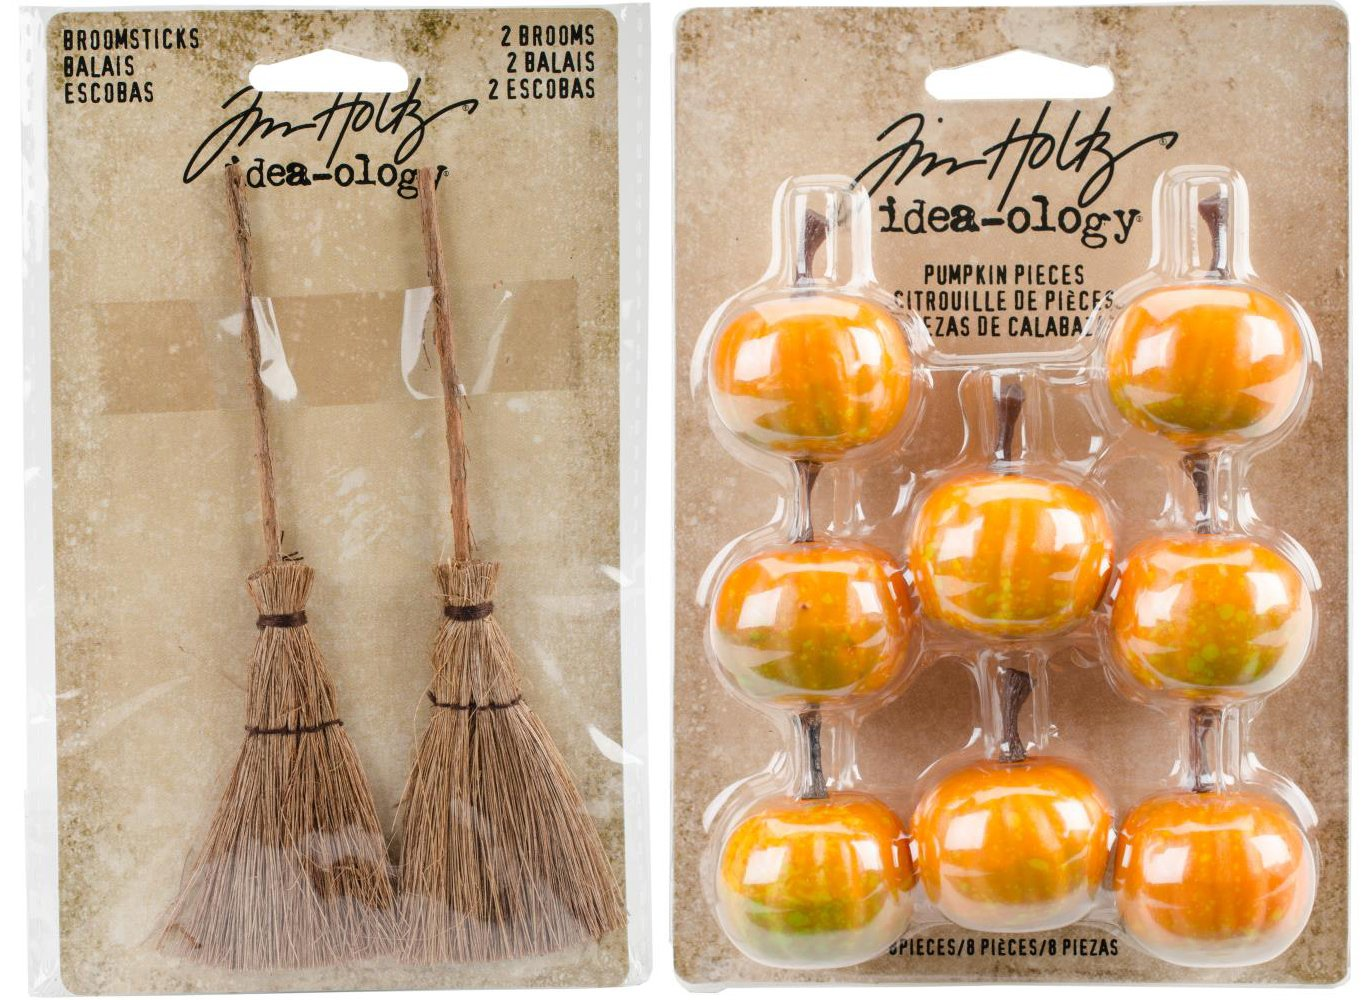 Tim Holtz 2017 Halloween - Broomsticks and Pumpkin Pieces - Miniature Brooms and Pumpkins Tim Holtz Advantus